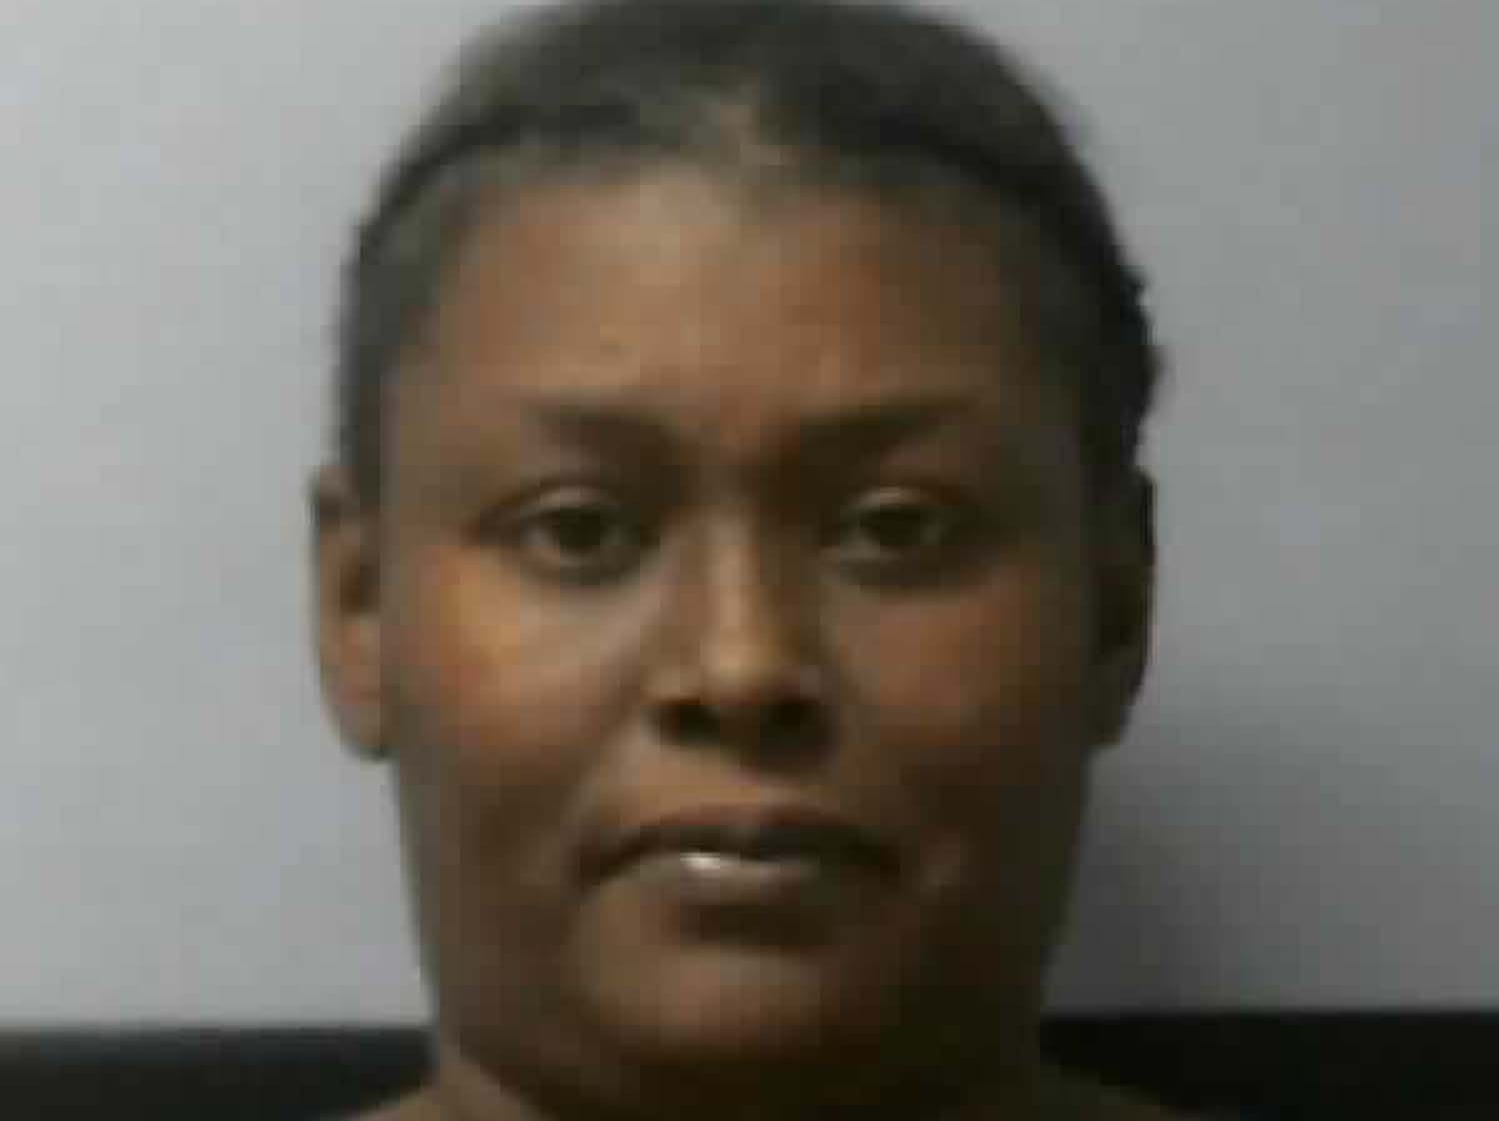 Latisha Stevenson, 40, is wanted by the Nevada Department of Corrections for escaping from the Casa Grande Transitional Housing center in Las Vegas. She was serving a prison sentence for burglary. She is 5 feet 5 inches tall, weighs 240 pounds and has black hair and brown eyes. She also has a scar on her right foot from a dog bite.